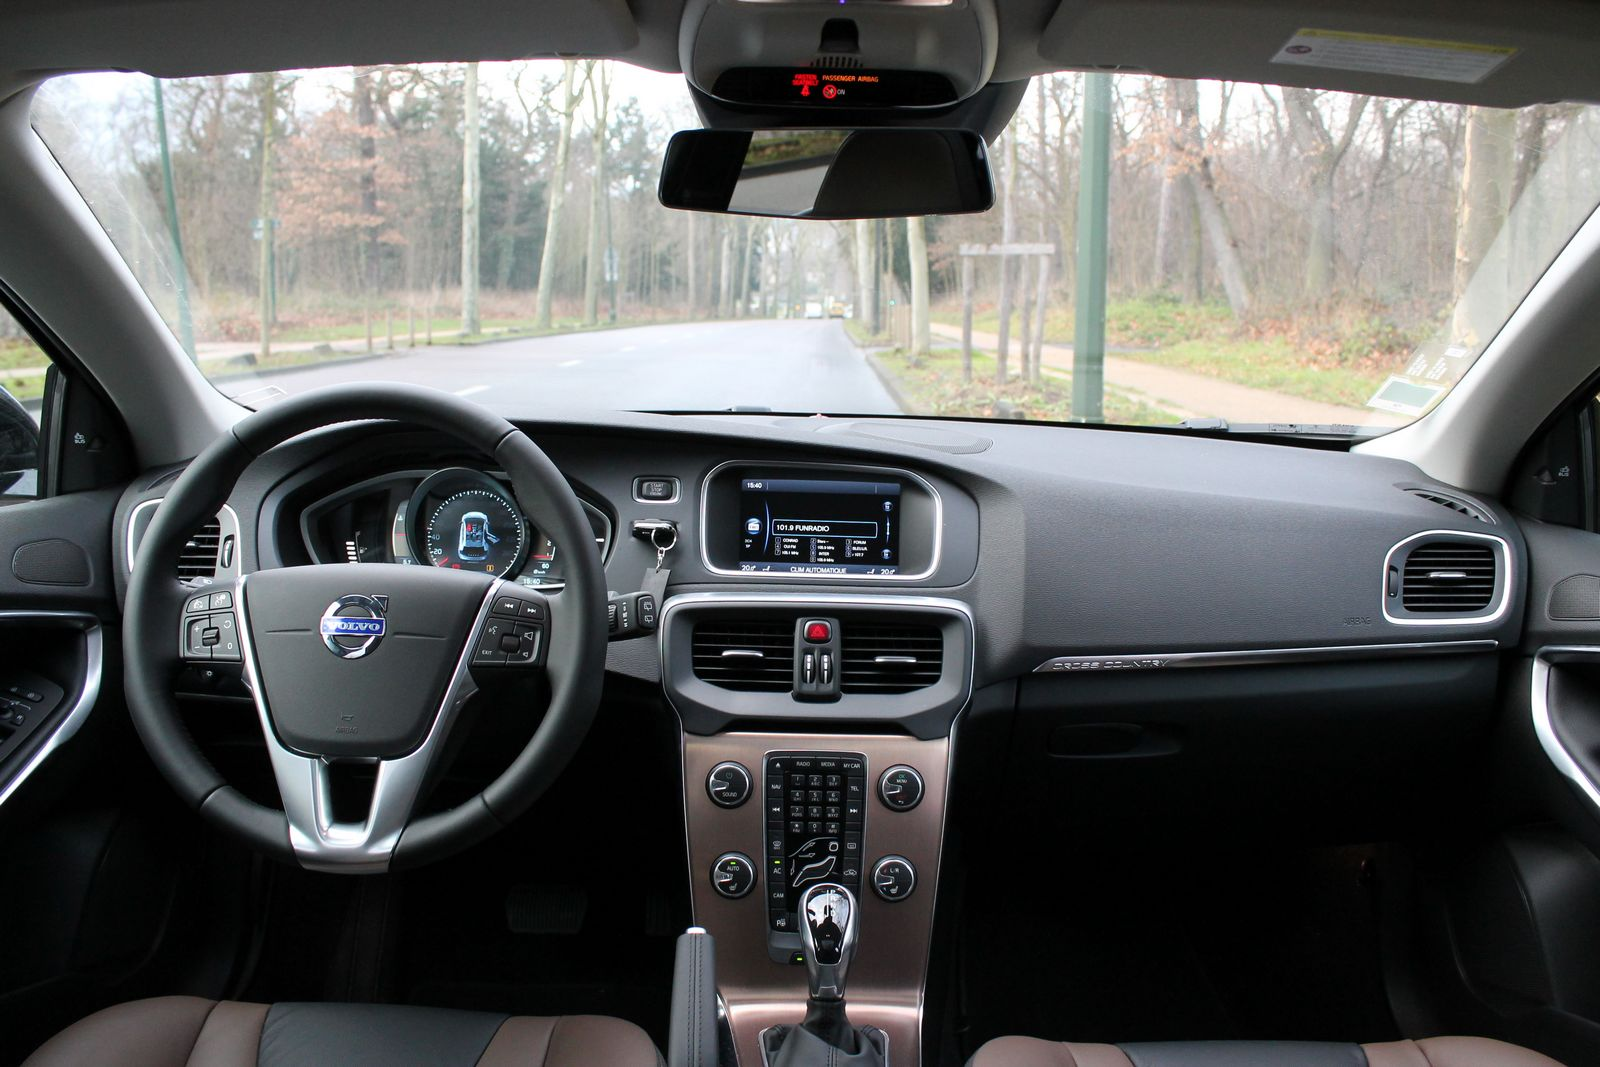 https://abcmoteur.fr/wp-content/uploads/2014/01/interieur-v40-cross-country-summum-cuir.jpg